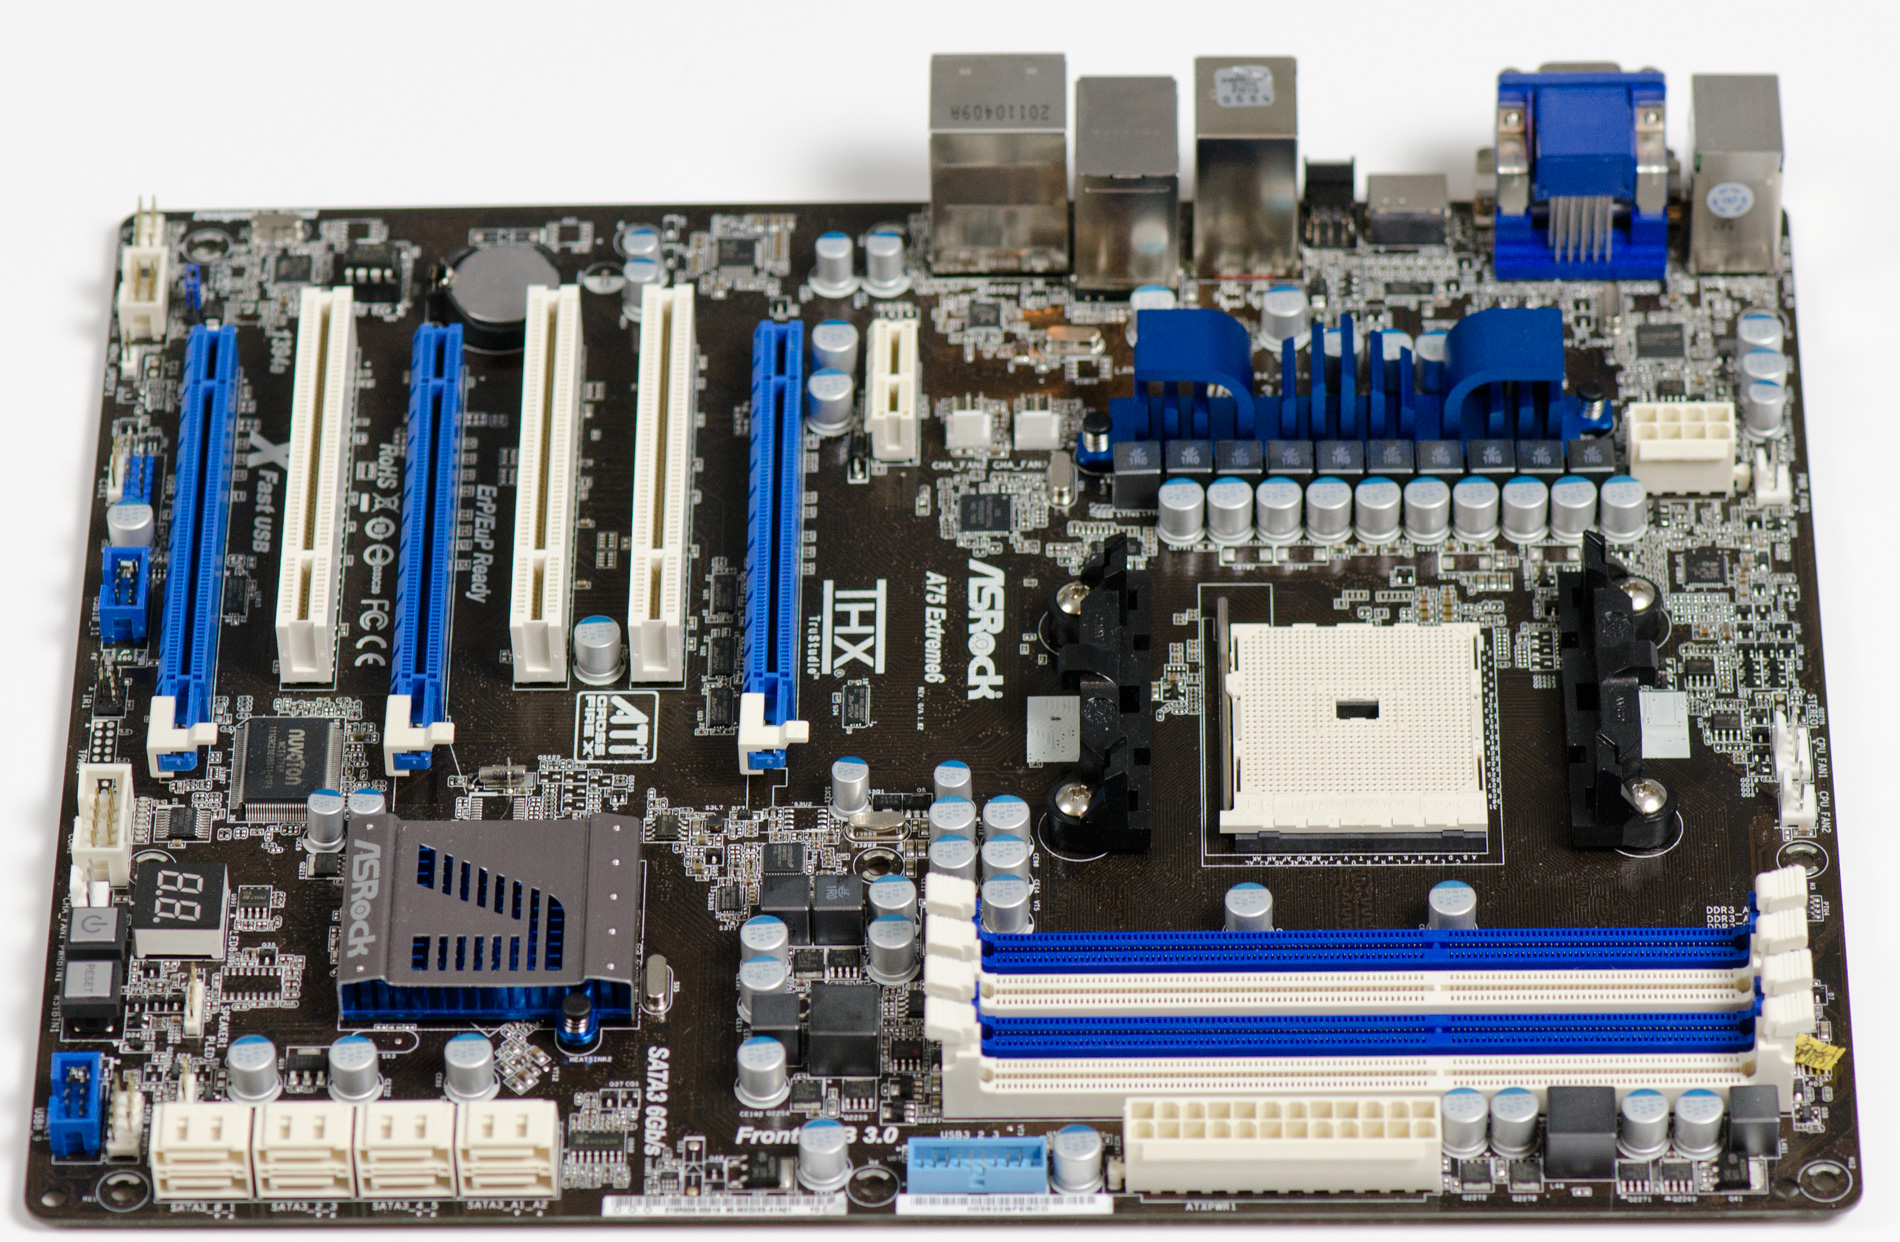 Asrock A75 Extreme6 AMD Fusion Media Last